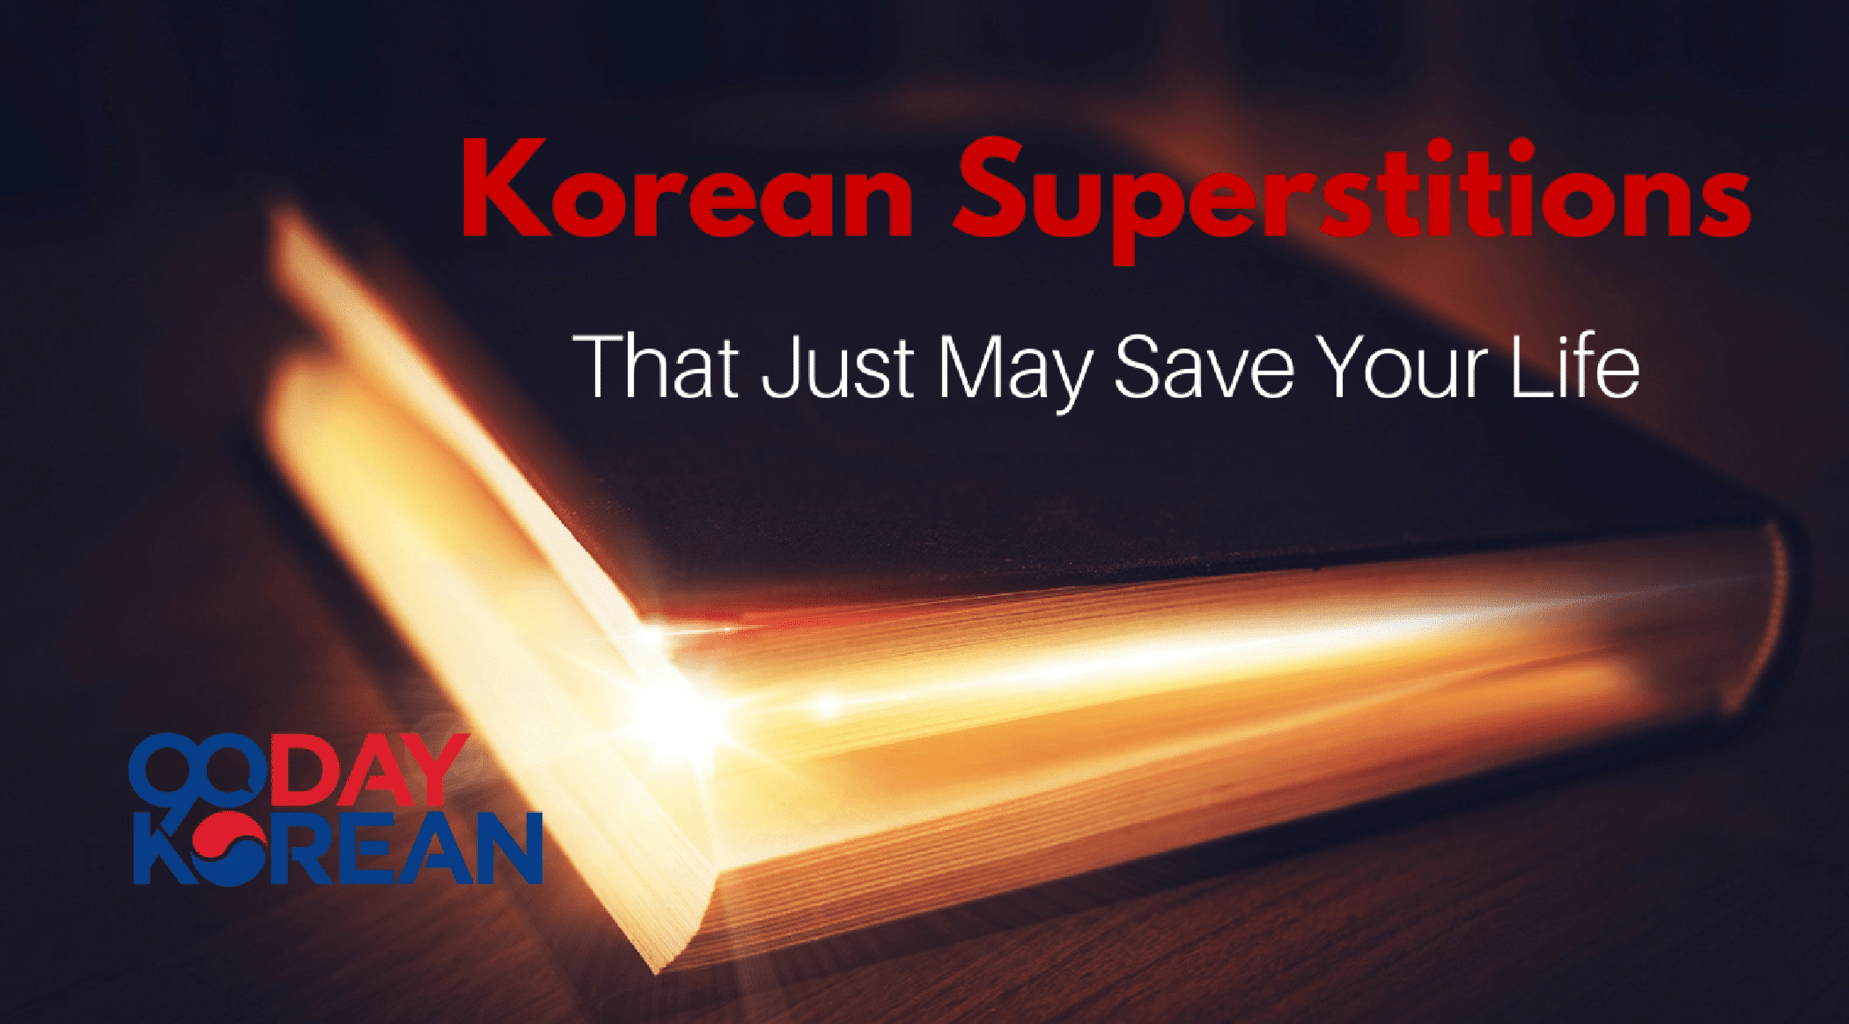 Korean Superstitions